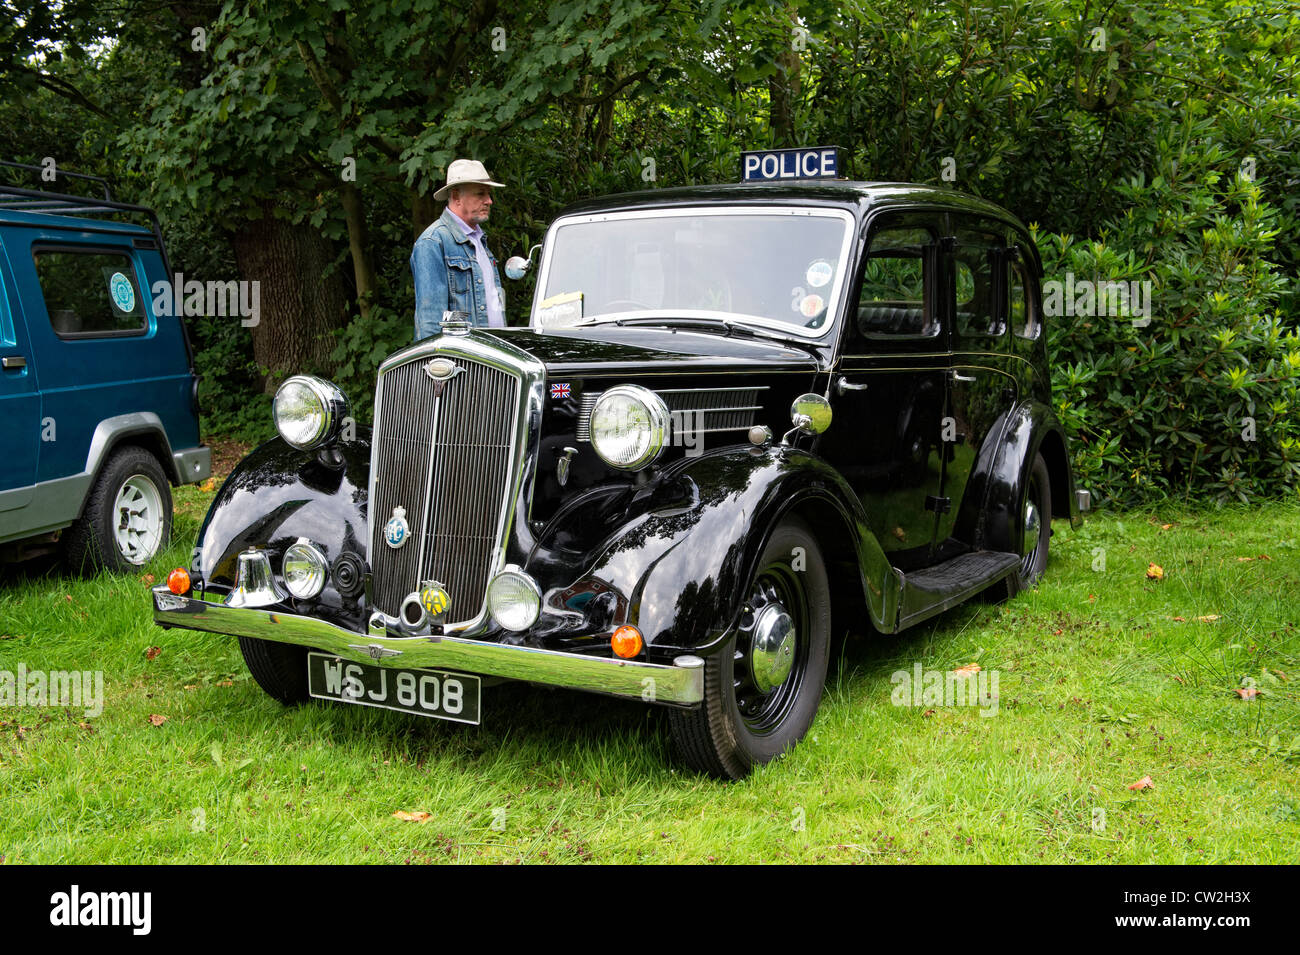 classic vintage Wolseley motor car being used as a Police Car at a ...